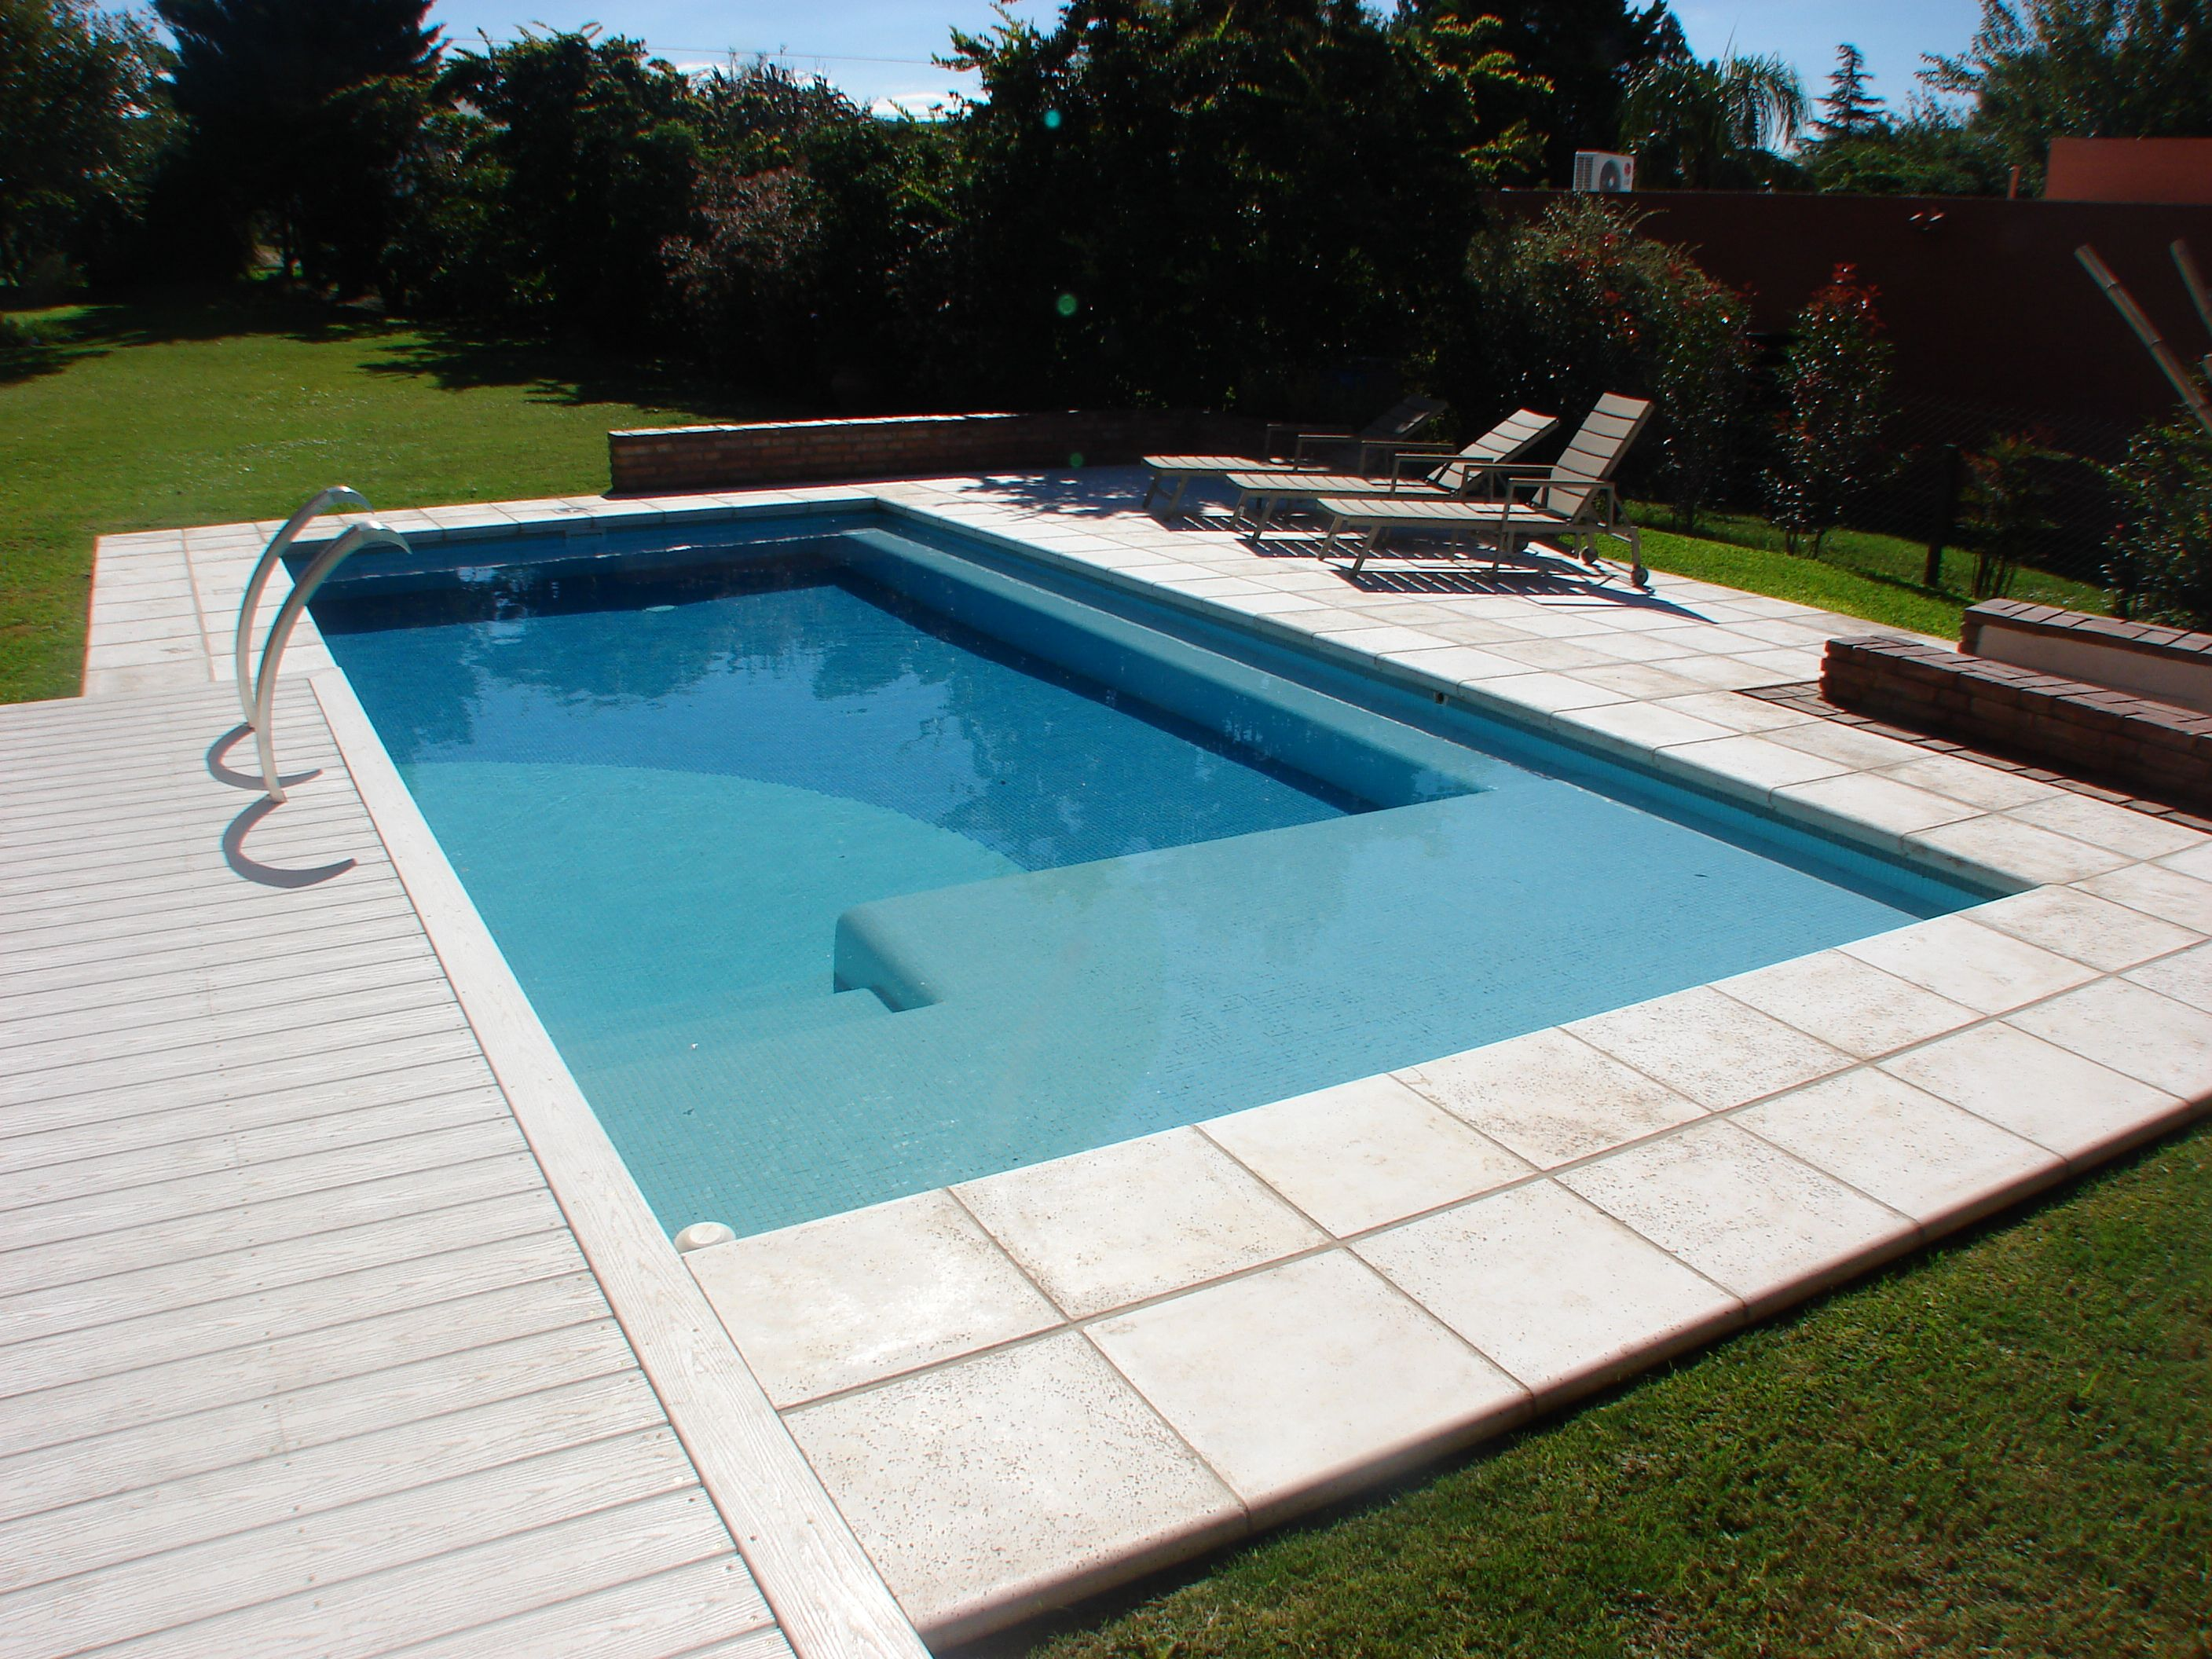 Arquitectura hidro deck wellnes swimmingpool for Planos de piscinas modernas